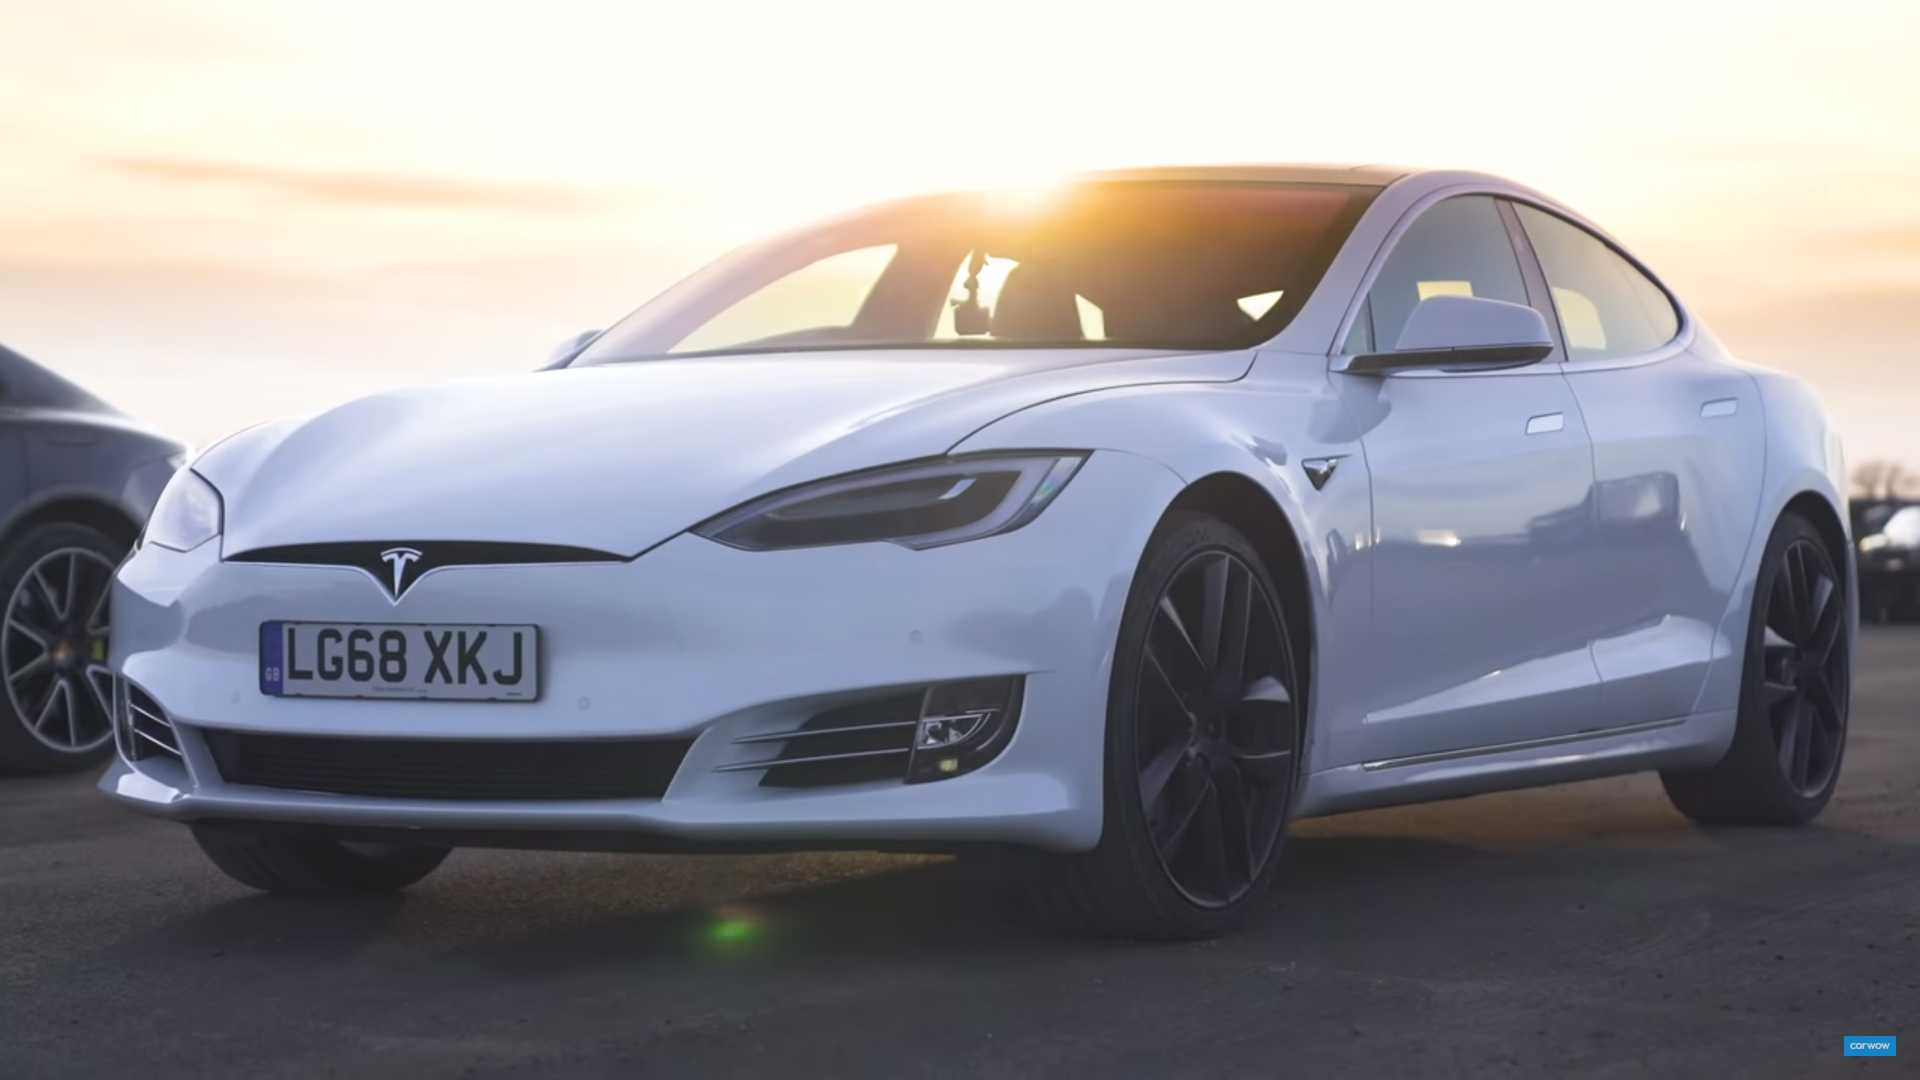 Tesla Electric Cars Dominate 0 60 Mph But I Pace Time Might Surprise